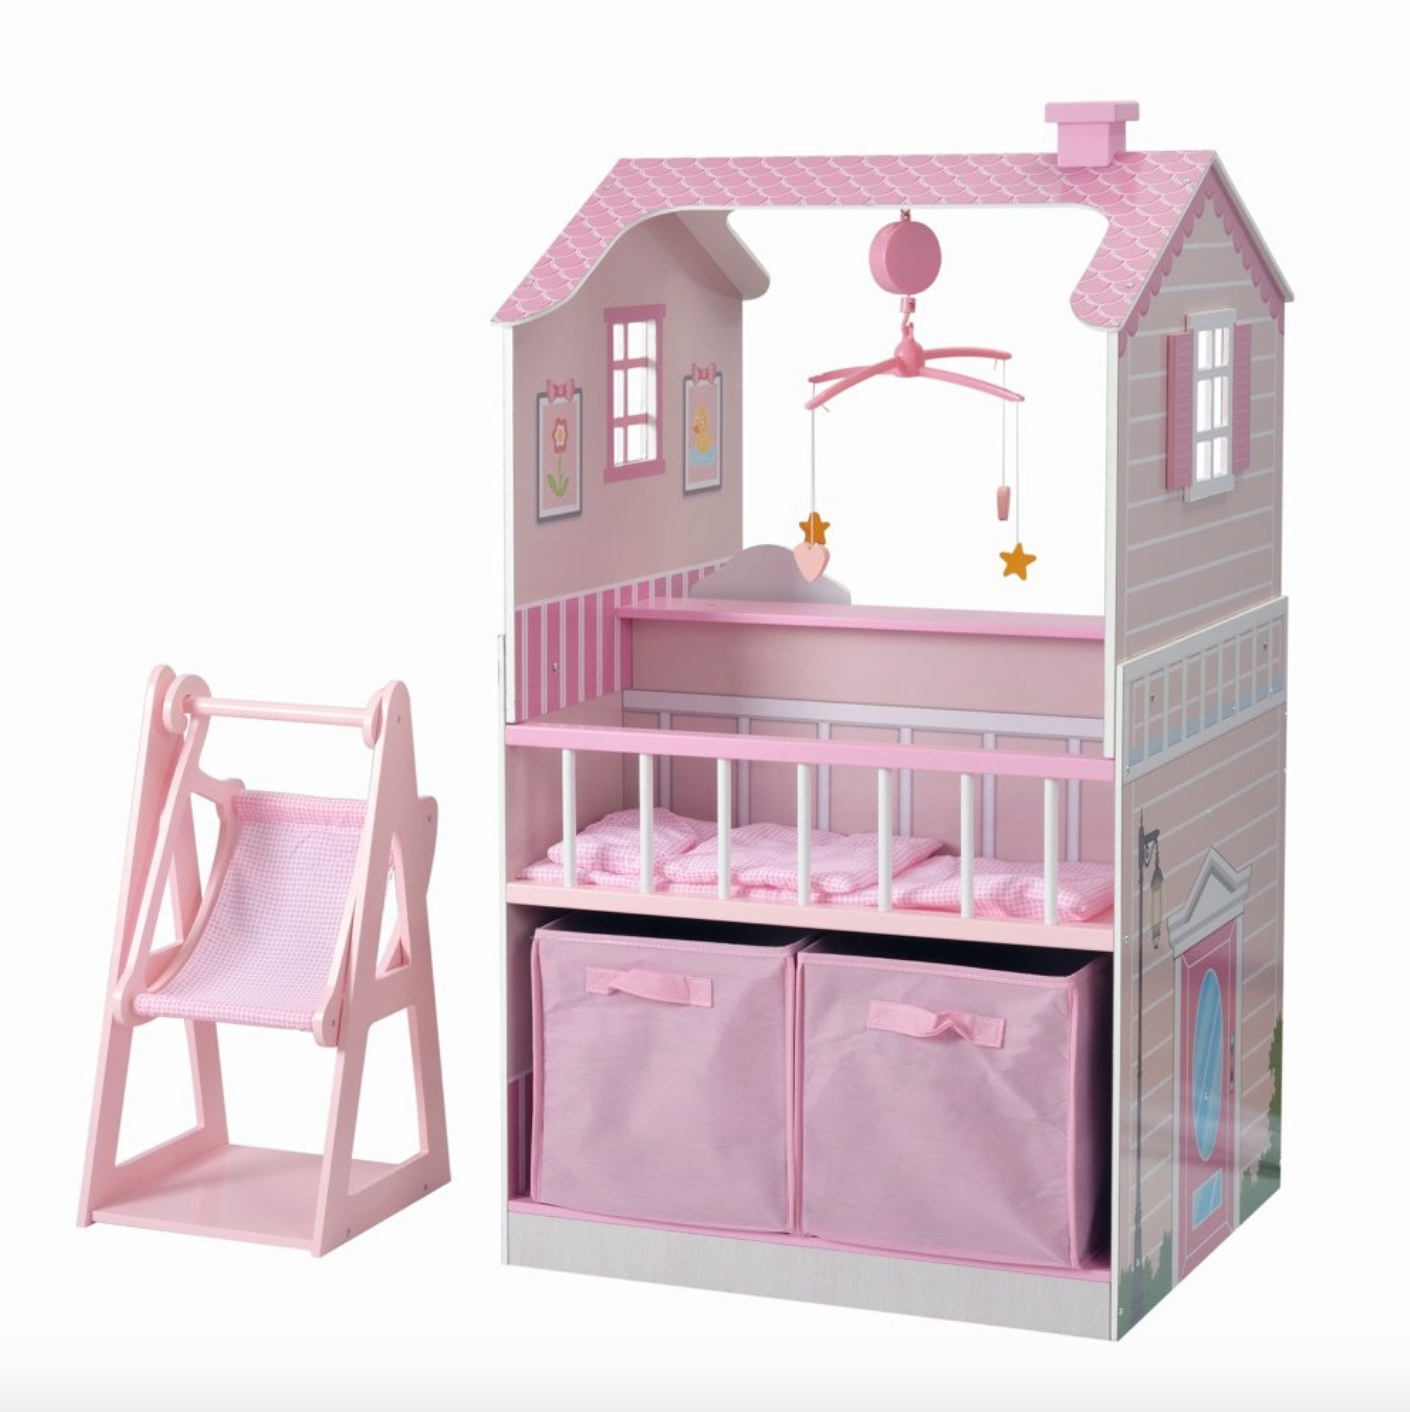 The all in one baby doll nursing station with pink accents